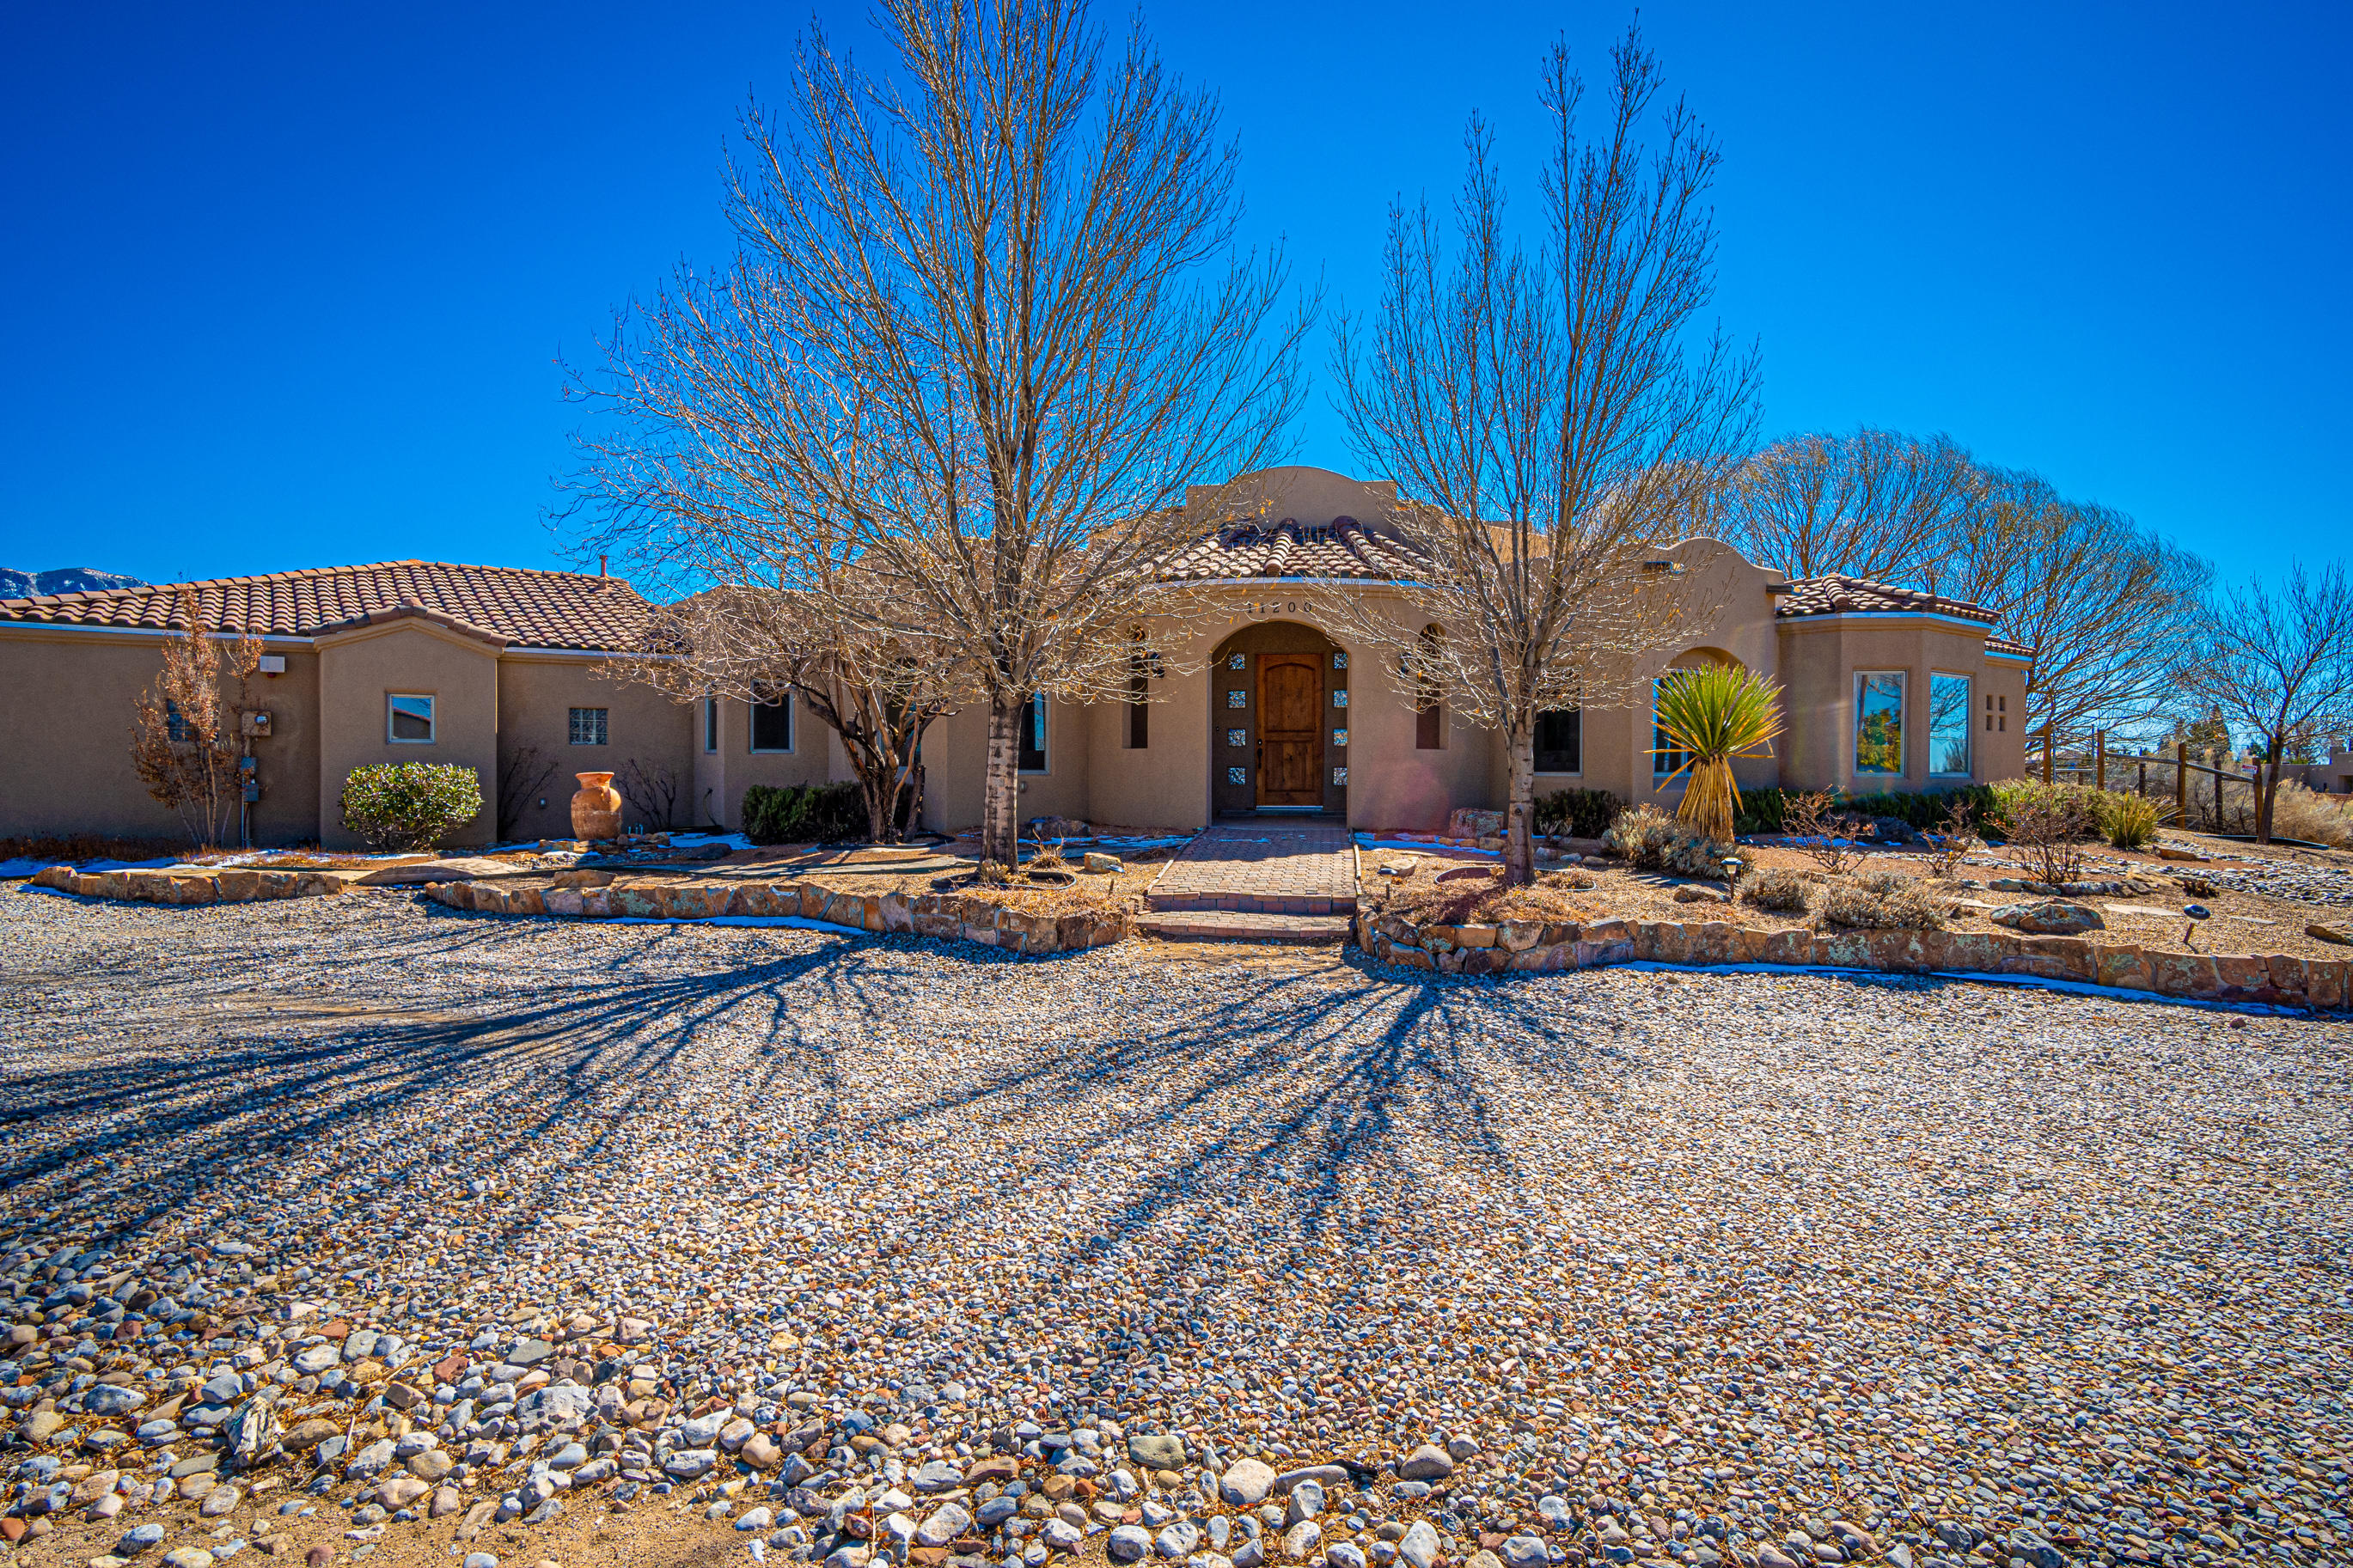 Beautiful Custom Home in North Albuquerque Acres! This one story home has been lovingly maintained by its original owners and has had many recent updates including a 1 year old TPO Roof w/transferrable warranty! With 3890 SF, this home offers 4 BR's plus an office/den, large great room with gorgeous 14ft T&G & Viga ceilings, Corbels & Viga Columns, new wood flooring (2020), Kiva FP, Formal Dining, Gourmet kitchen with island and nook, granite countertops and Knotty Cherry cabinetry w/pullouts, large pantry, DBL Oven, SS Appliances! Large Master BR has Gas FP, Master bath has beautiful tiled walk in snail shower, jetted tub,  WIC, all BR's have WIC's! Oversized 3 CG! Wonderful lush backyard has huge covered patio, built-in kitchen with gas grill & fridge and inground pool w/rock fountain!!